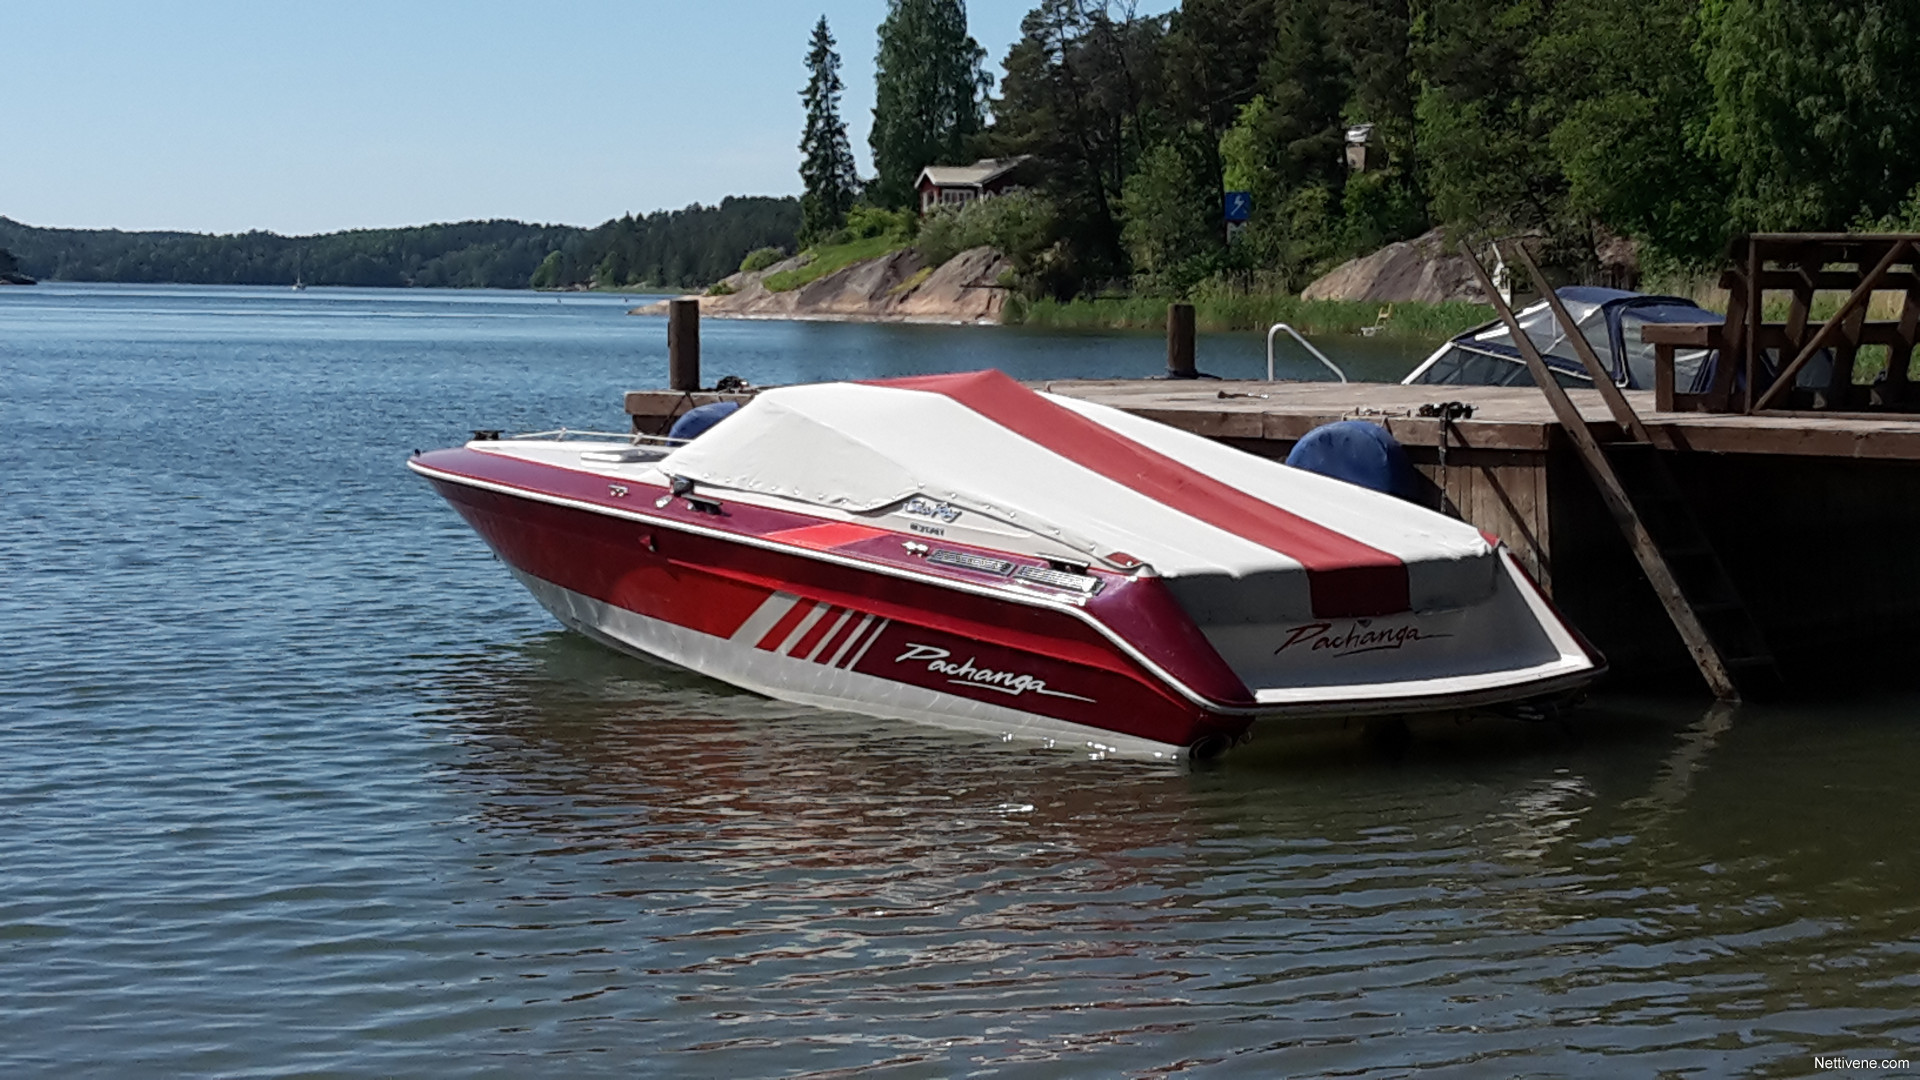 Arguably the best boat Sea Ray has ever made under 25 feet. Classic lines, good quality, performs well and is very practical.